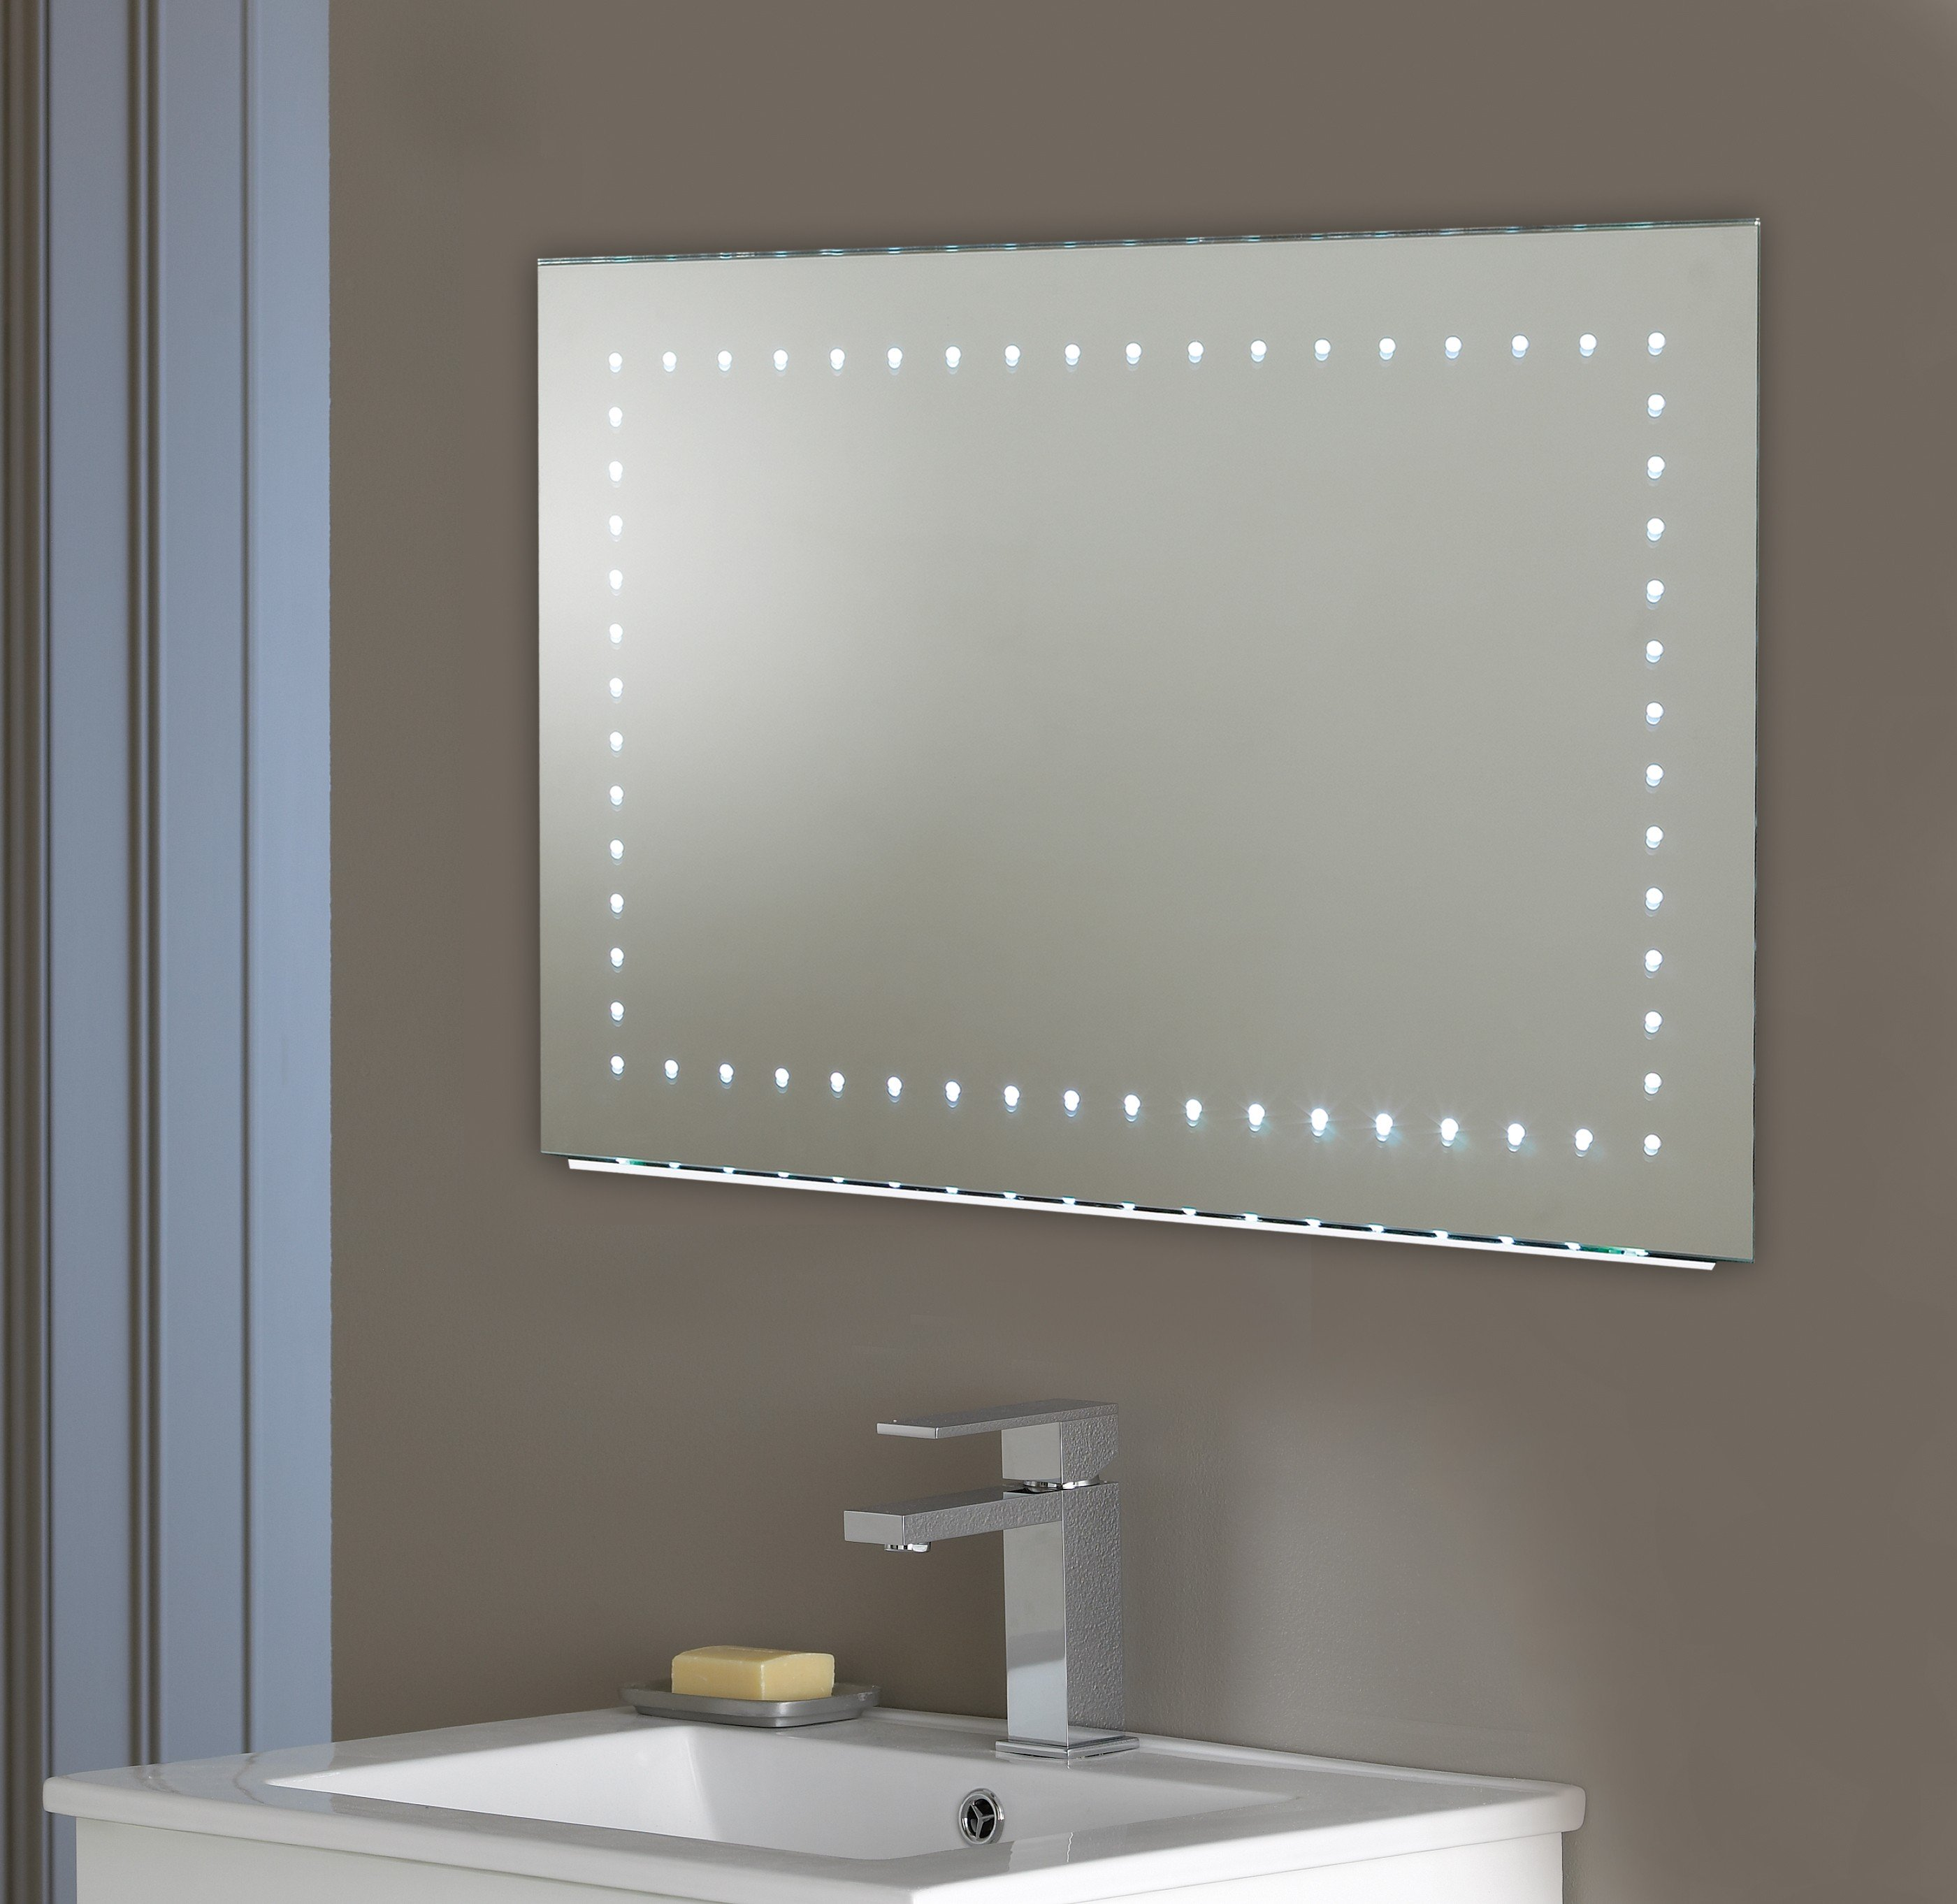 applique murale led pour miroir de salle de bain 120 cm. Black Bedroom Furniture Sets. Home Design Ideas